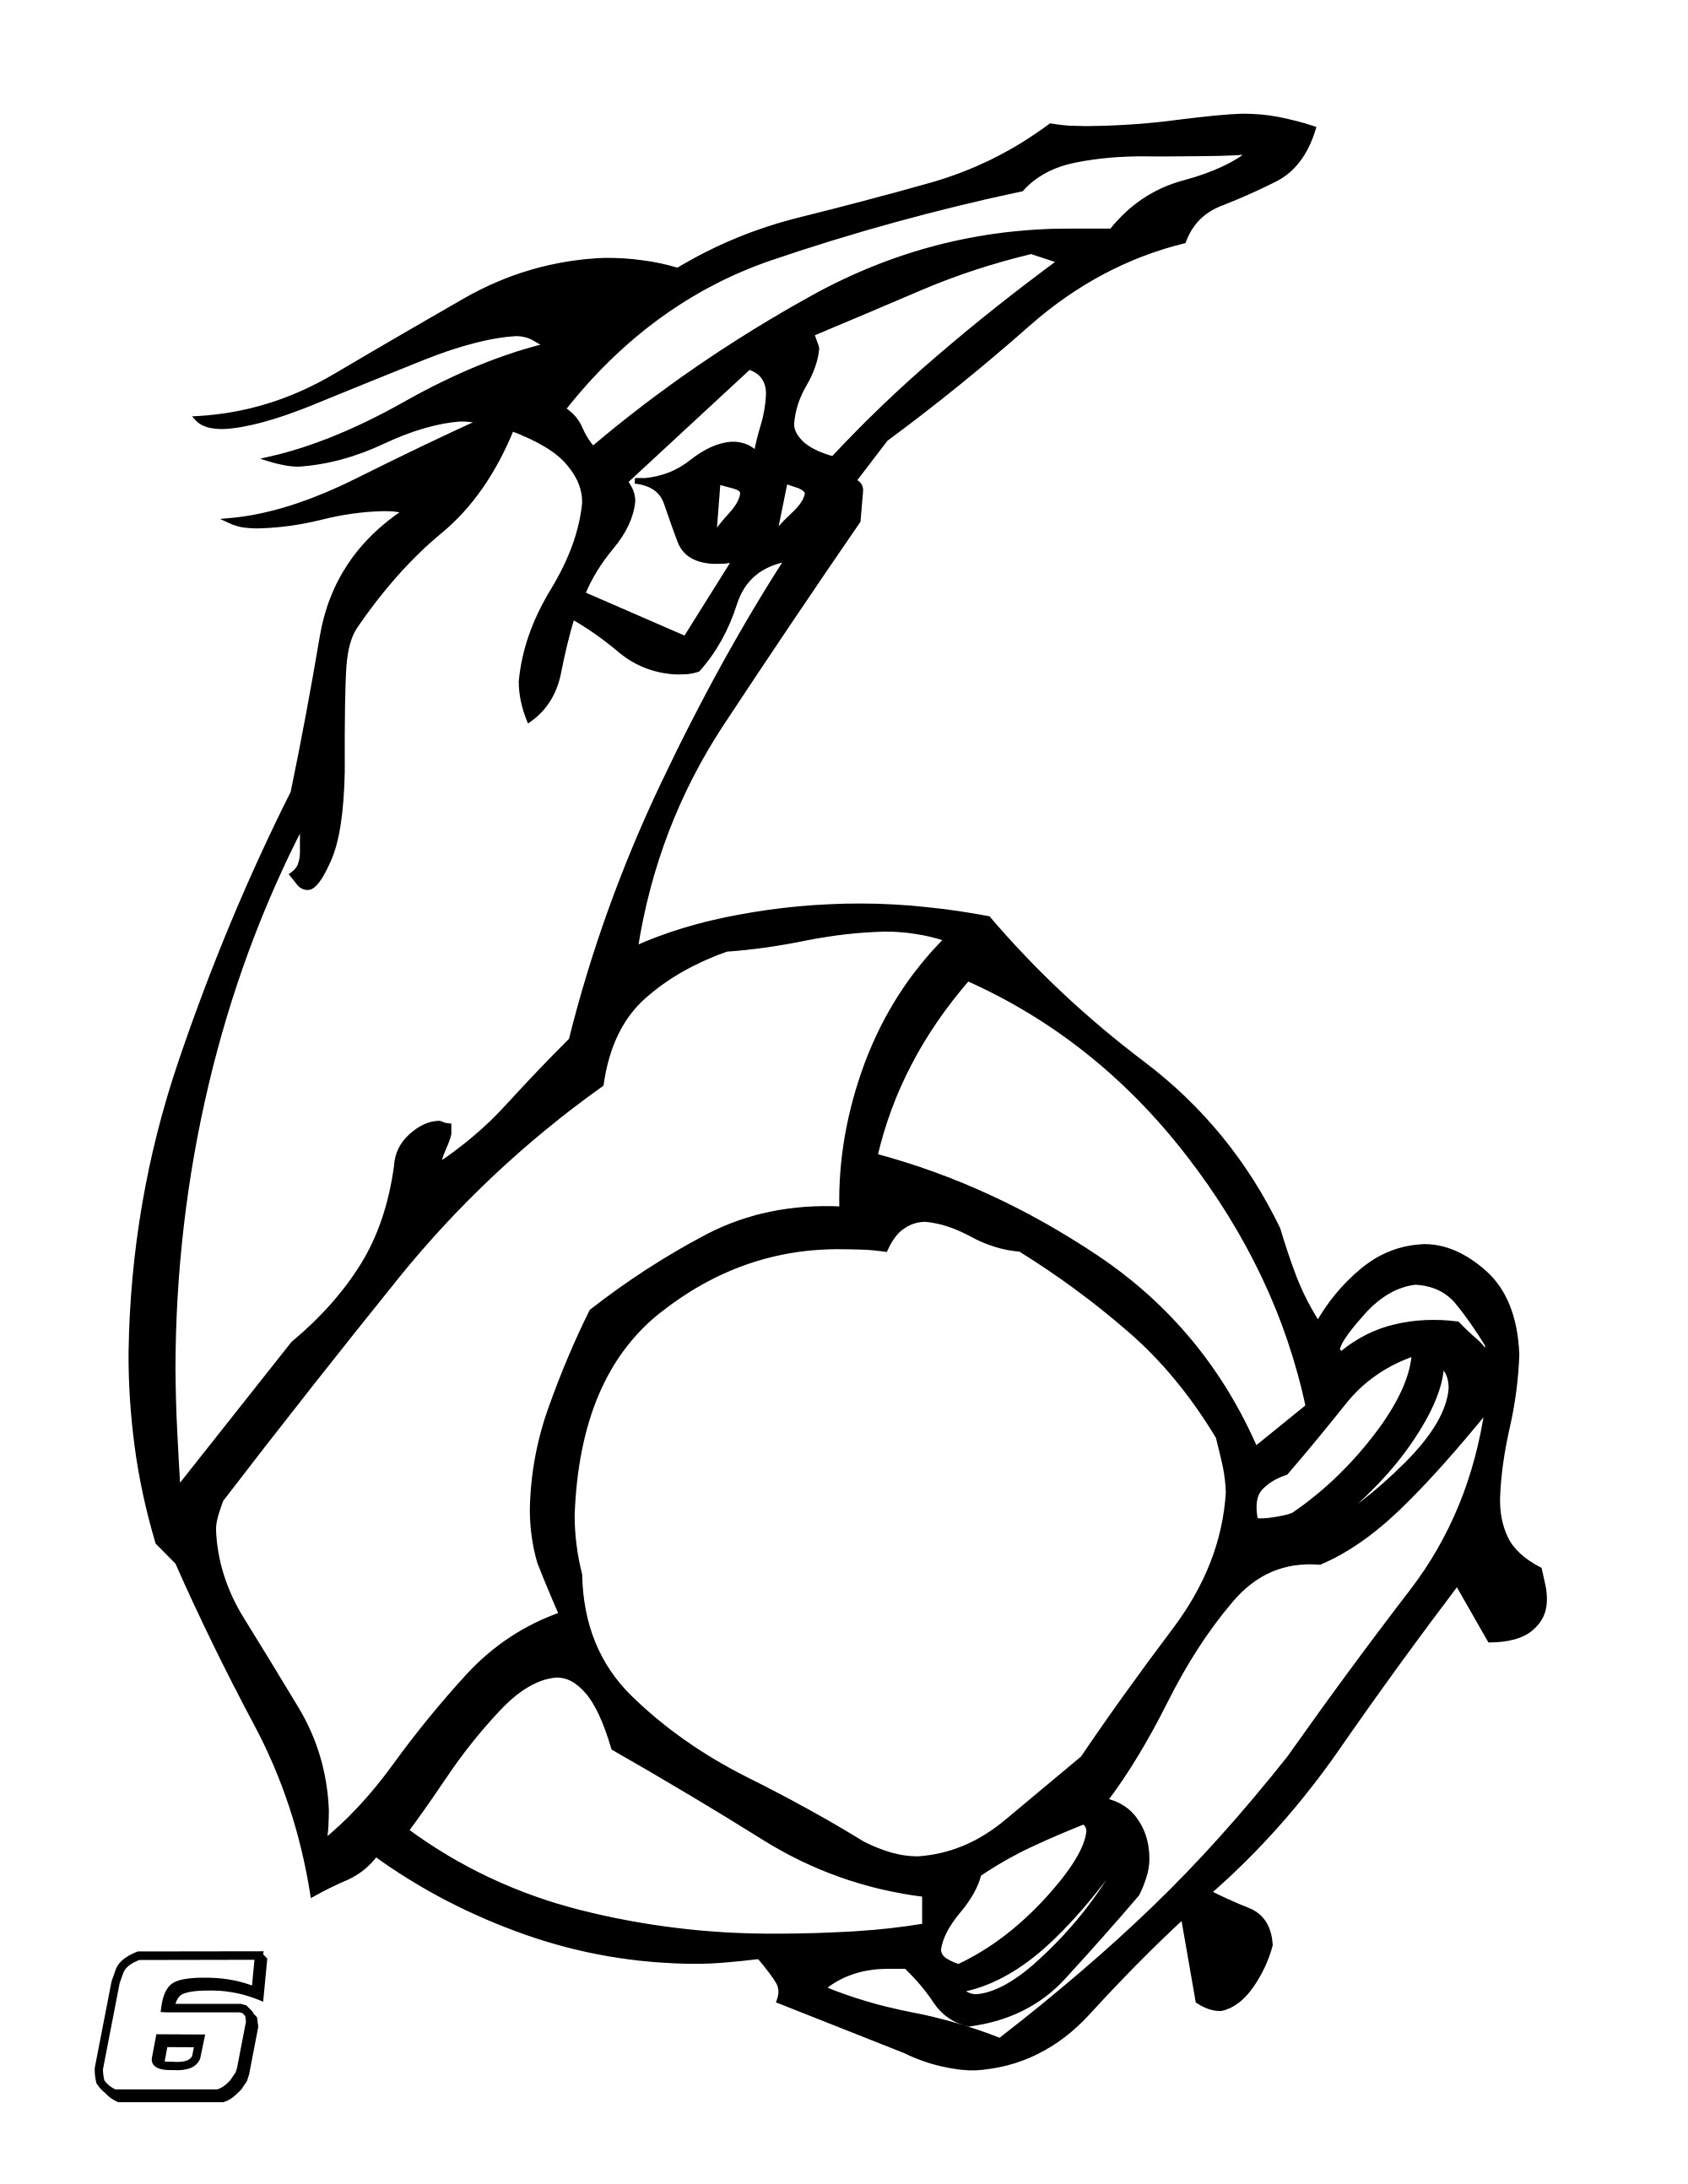 Number 6 Coloring Page Free Printable Number Coloring Pages For Kids